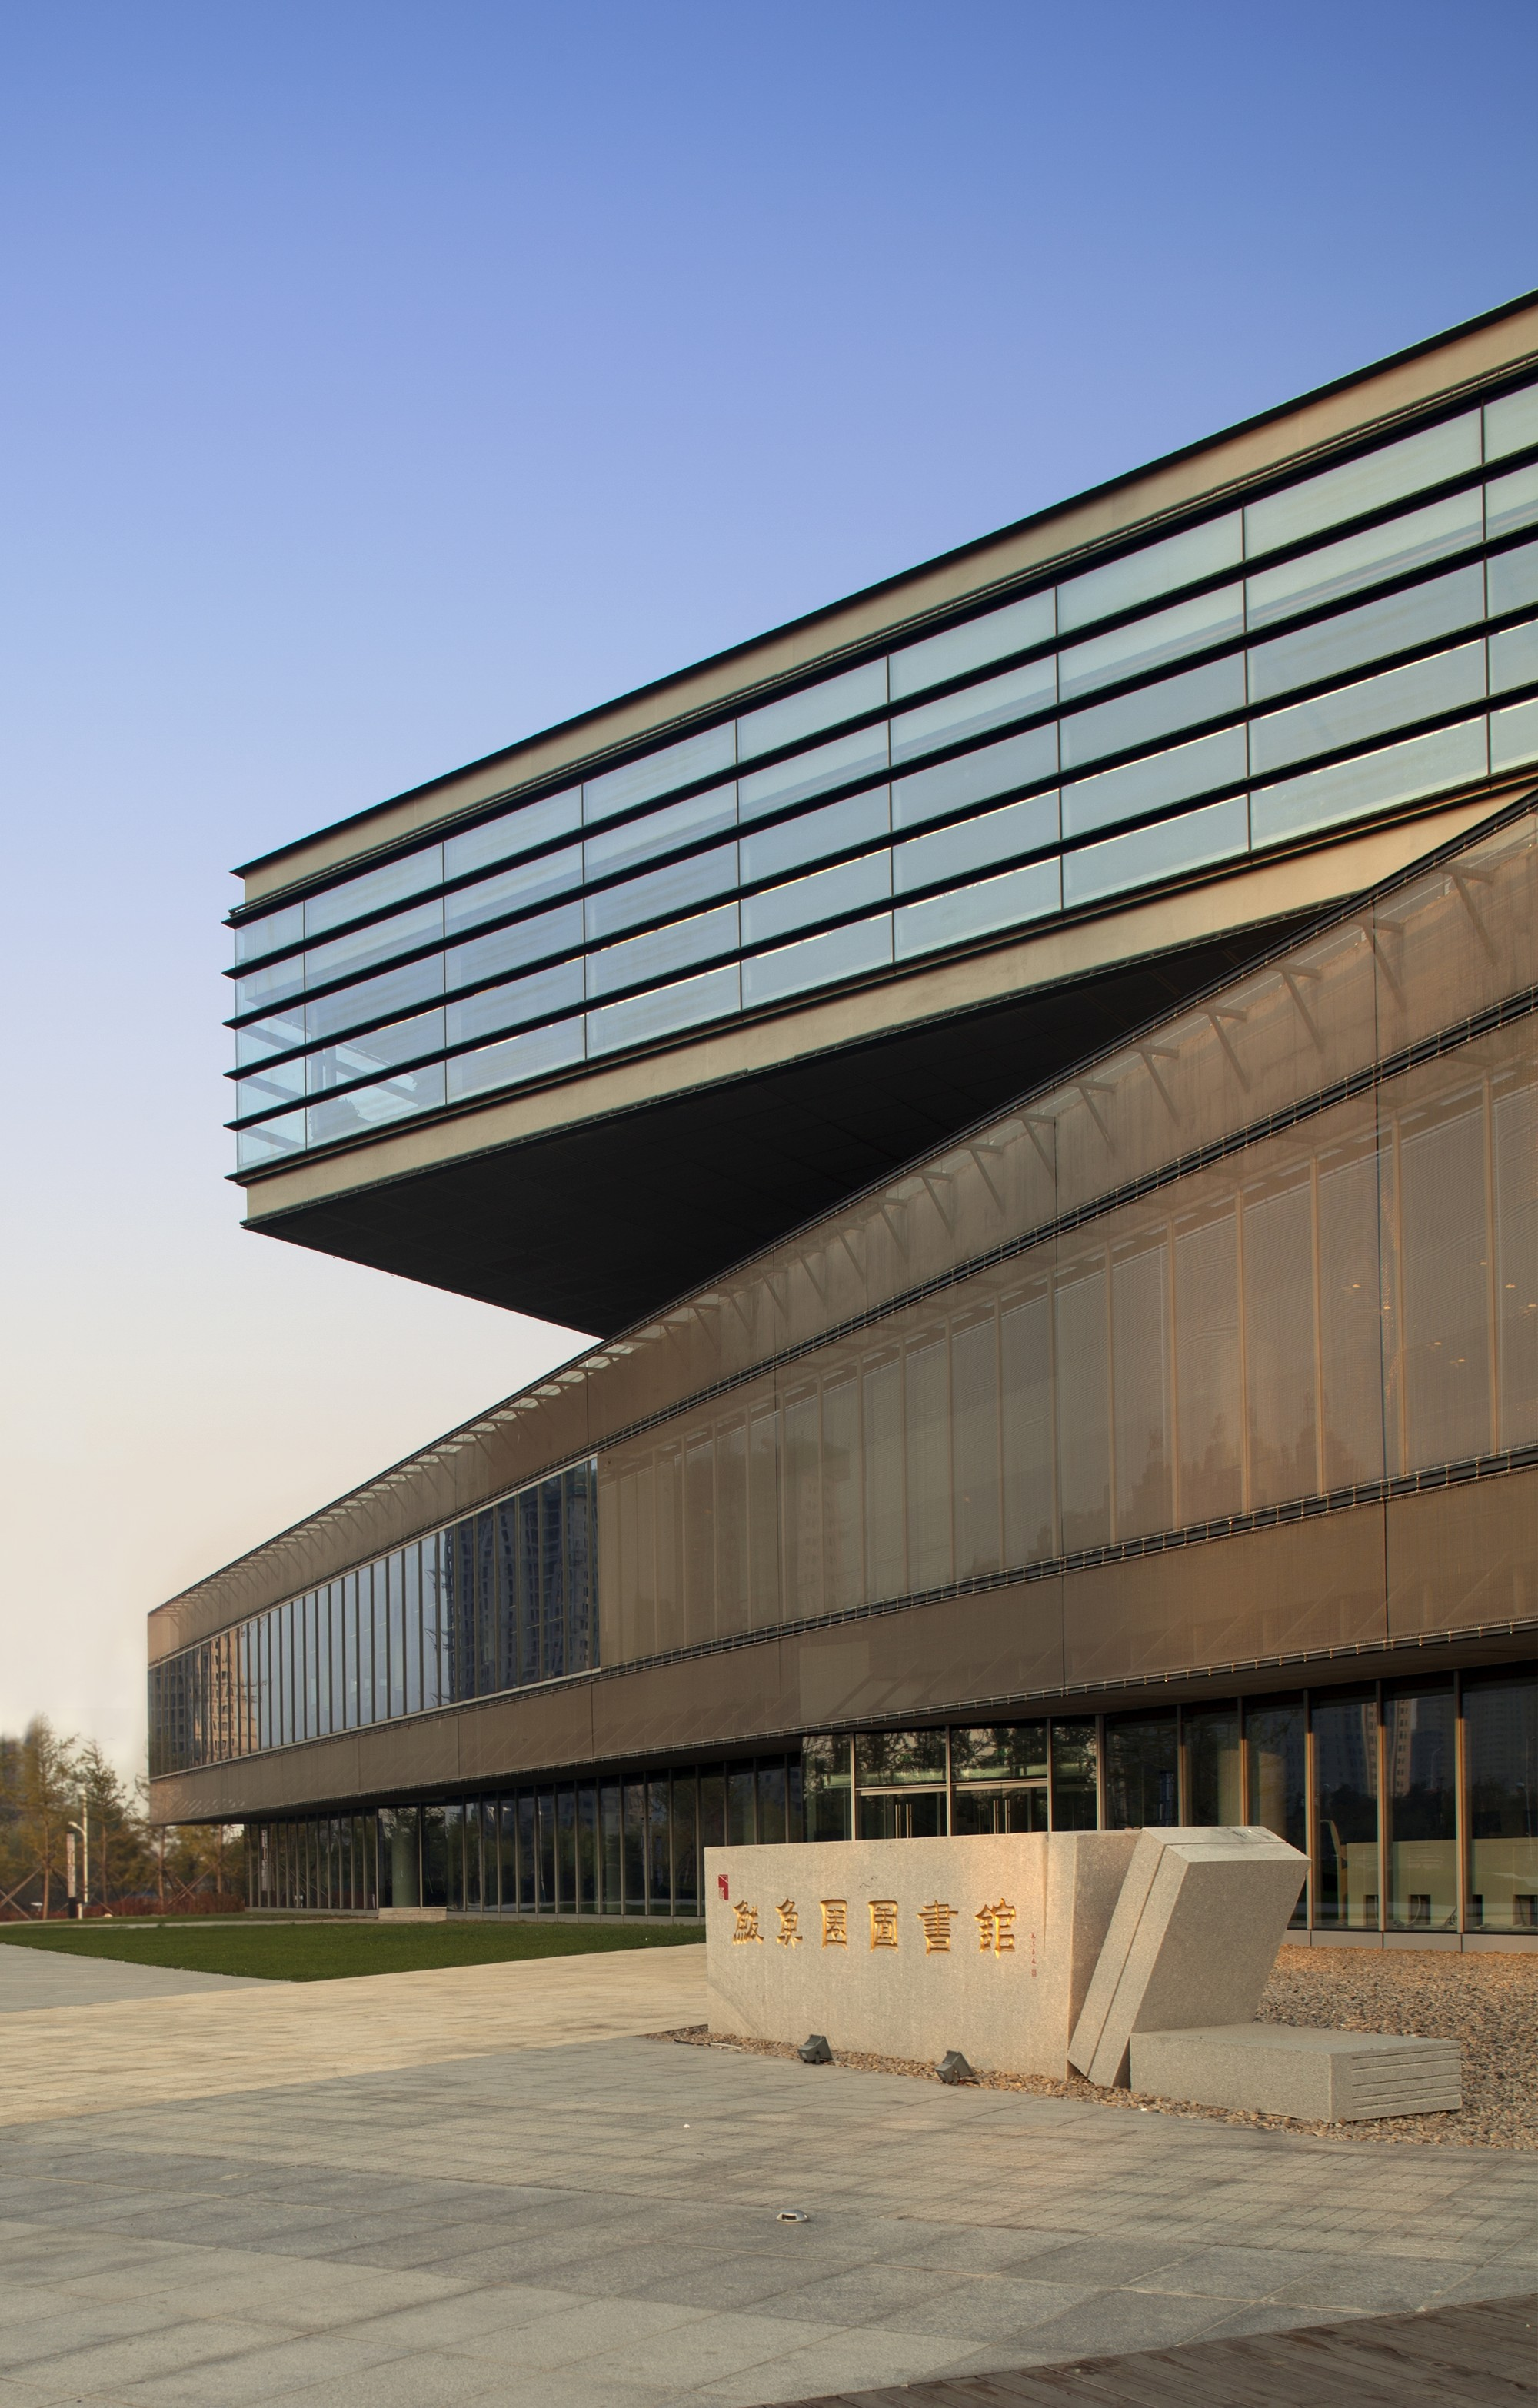 dsd office archdaily bayuquan library dsd courtesy of dsd